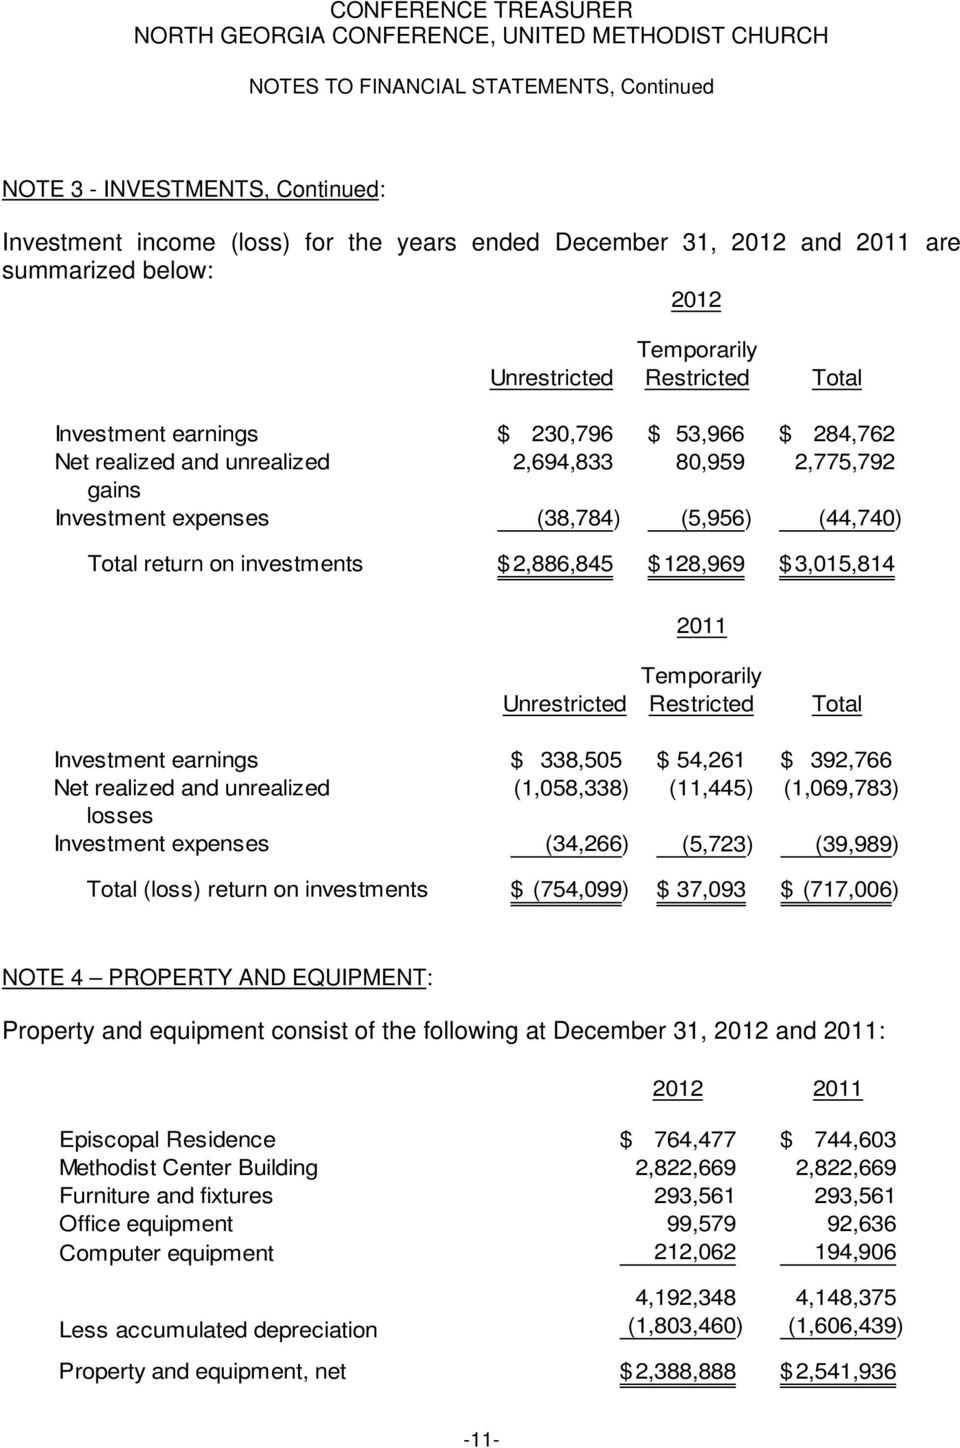 2011 Unrestricted Temporarily Restricted Total Investment earnings $ 338,505 $ 54,261 $ 392,766 Net realized and unrealized (1,058,338) (11,445) (1,069,783) losses Investment expenses (34,266)